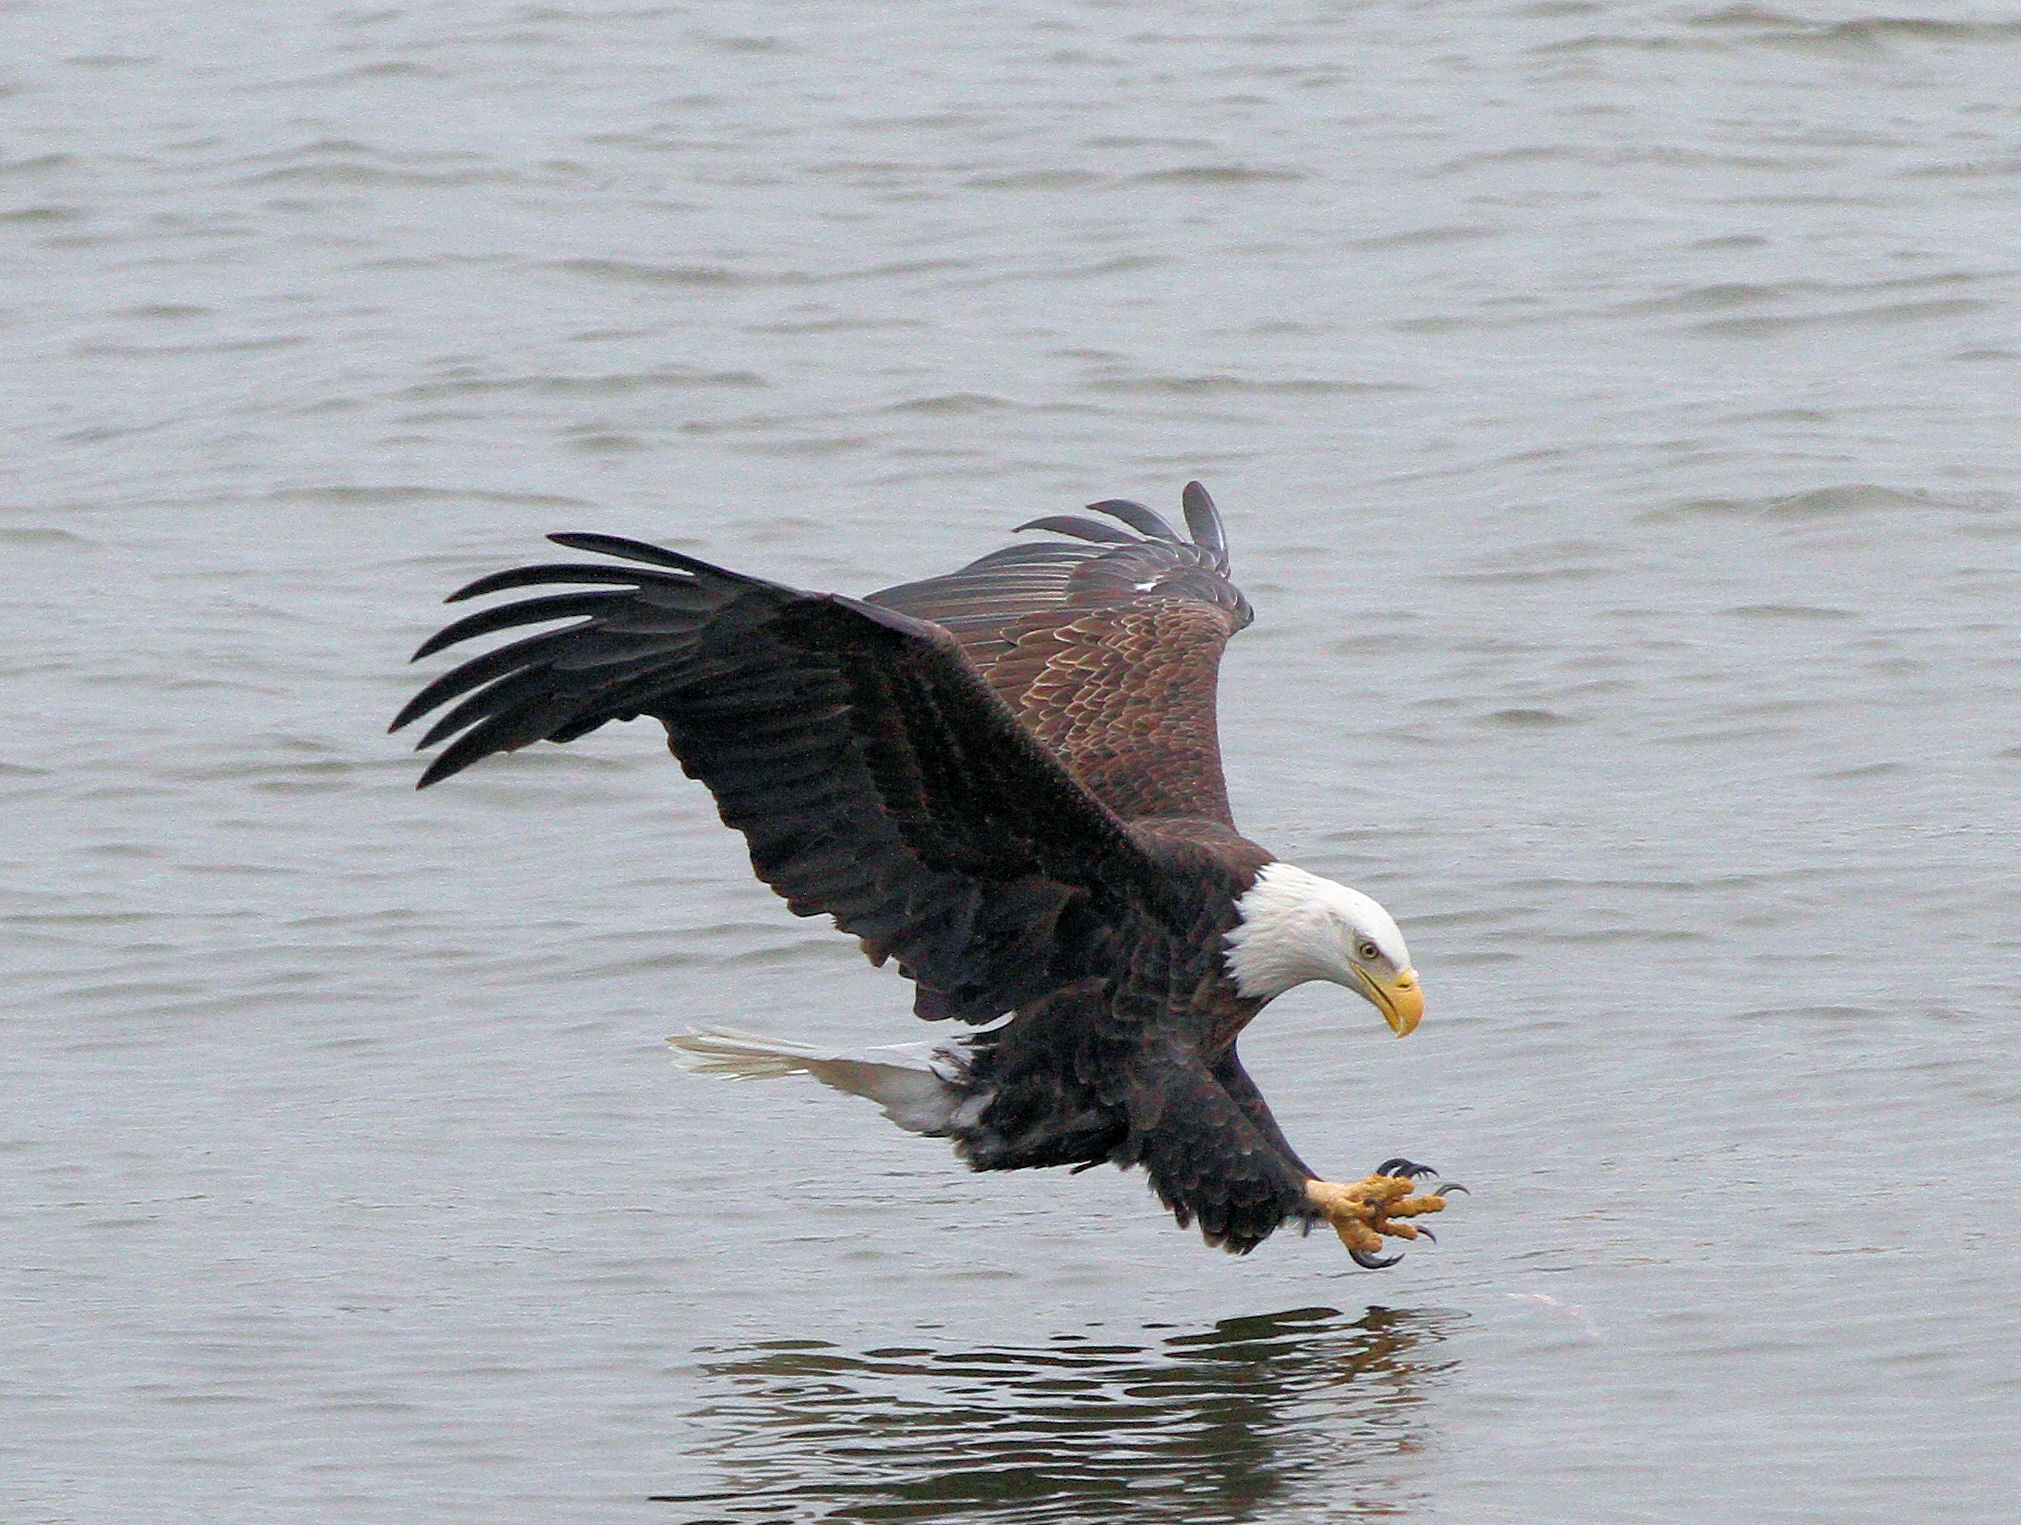 Great River Road Illinois - Weißkopfseeadler auf Fischfang - Foto Great River Road Illinois